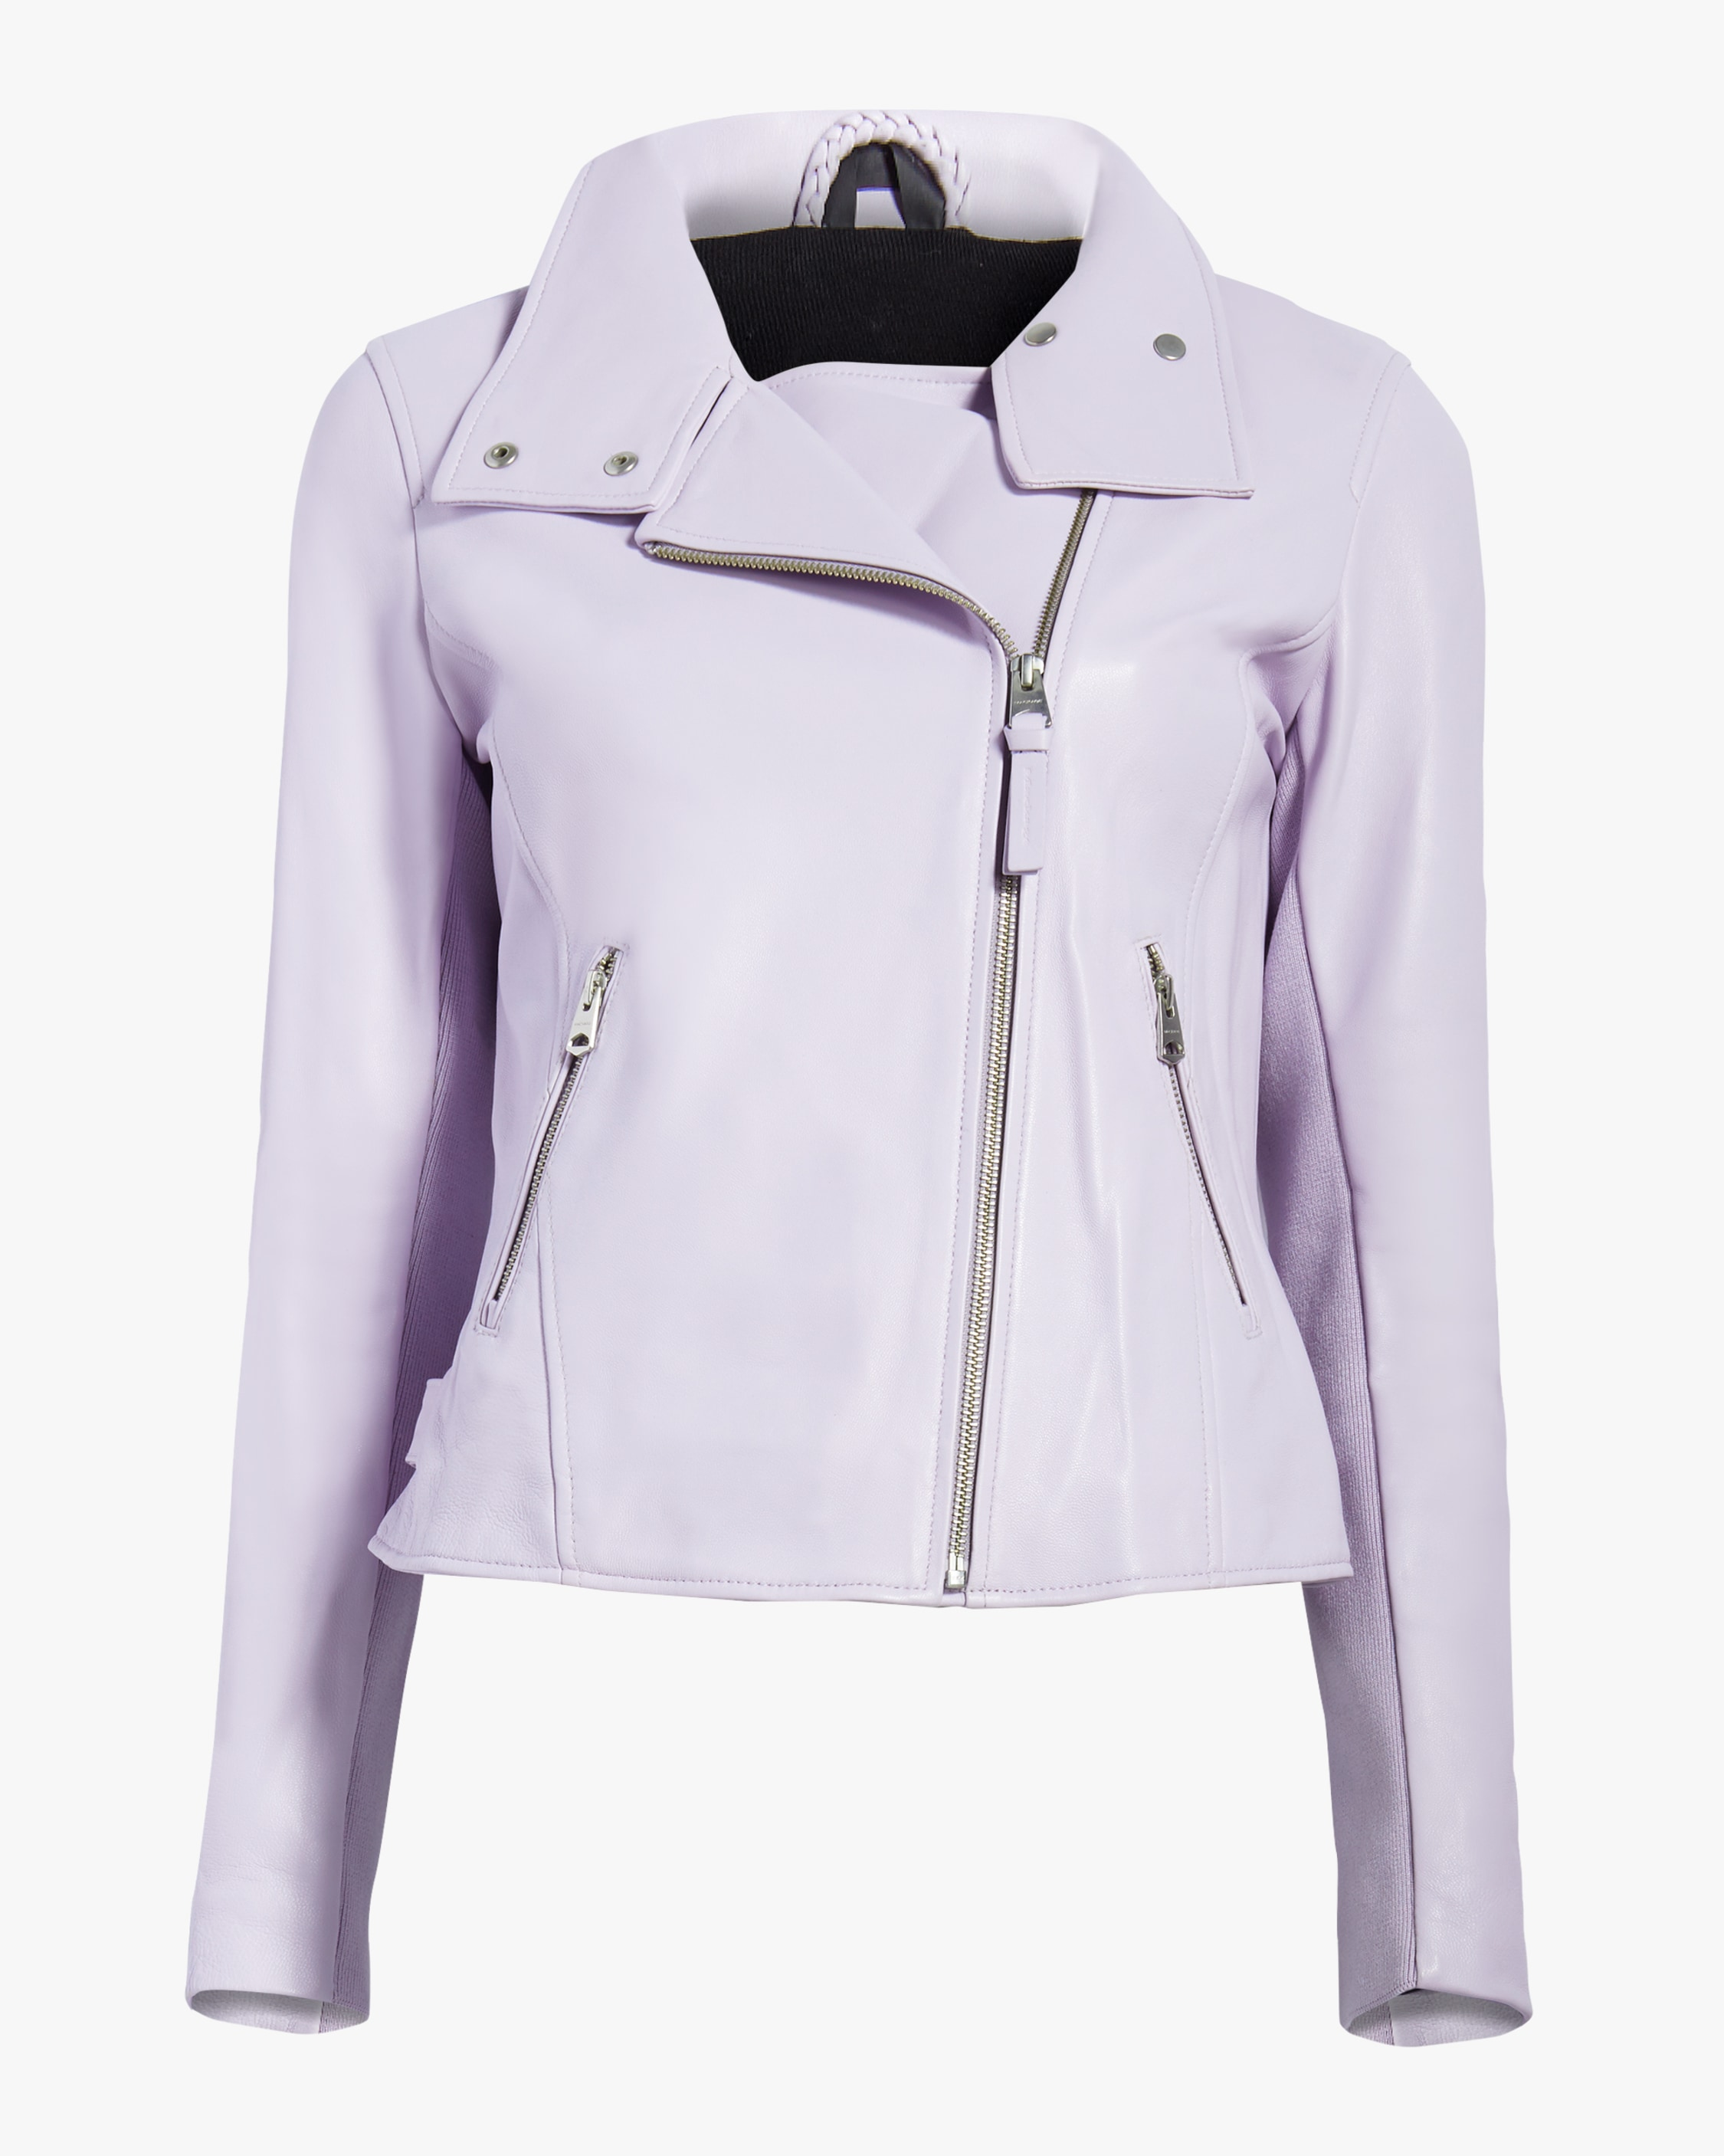 Lilac Leather Jacket - Mackage123 Mercer StNew York, NY$780